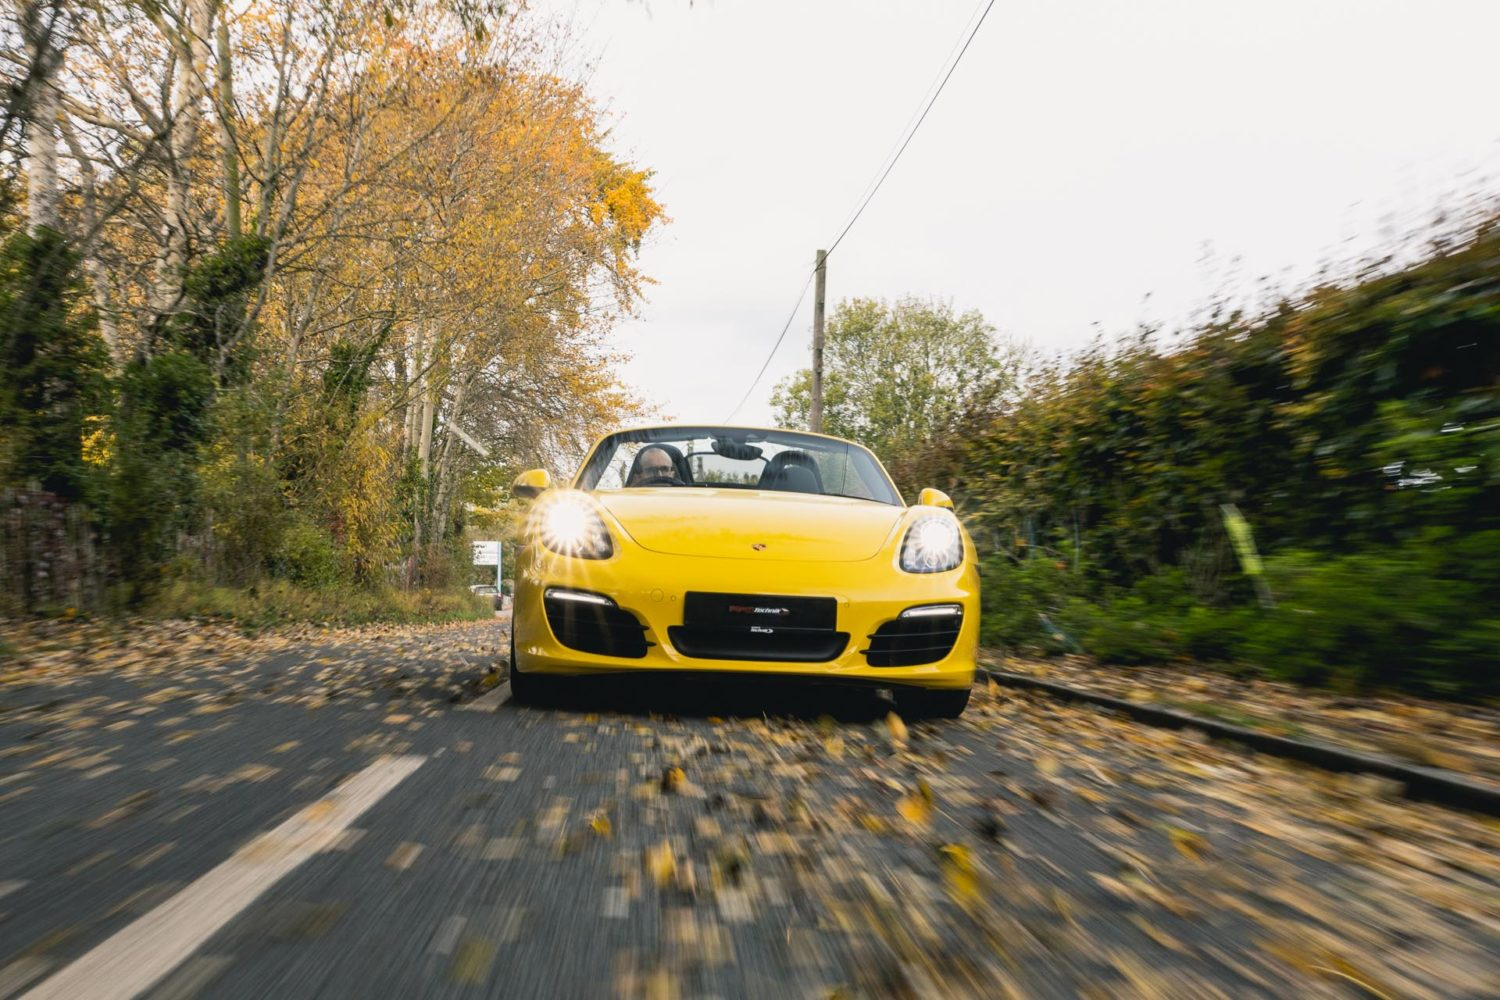 981 boxster s driving